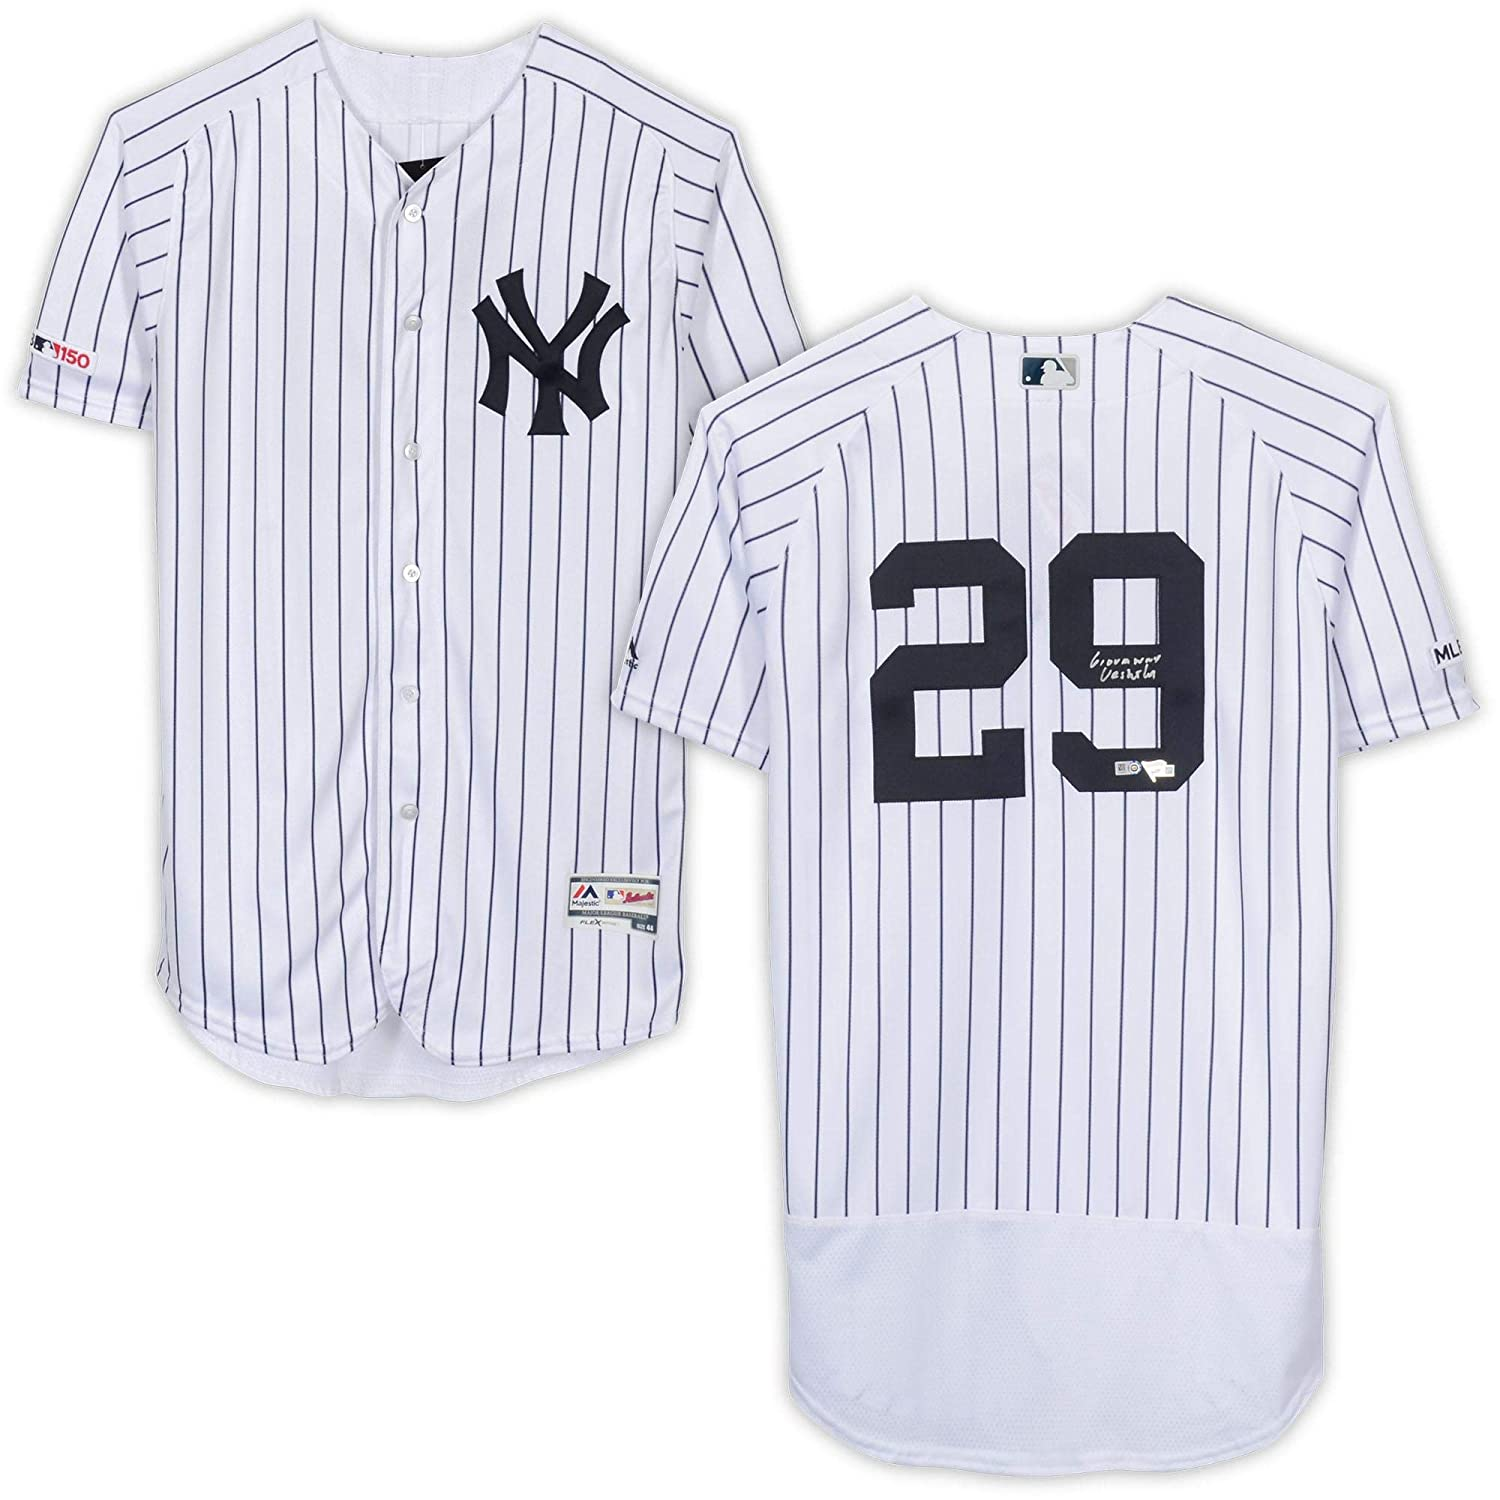 reputable site 0a9ac 7d574 Gio Urshela New York Yankees Autographed White Majestic ...